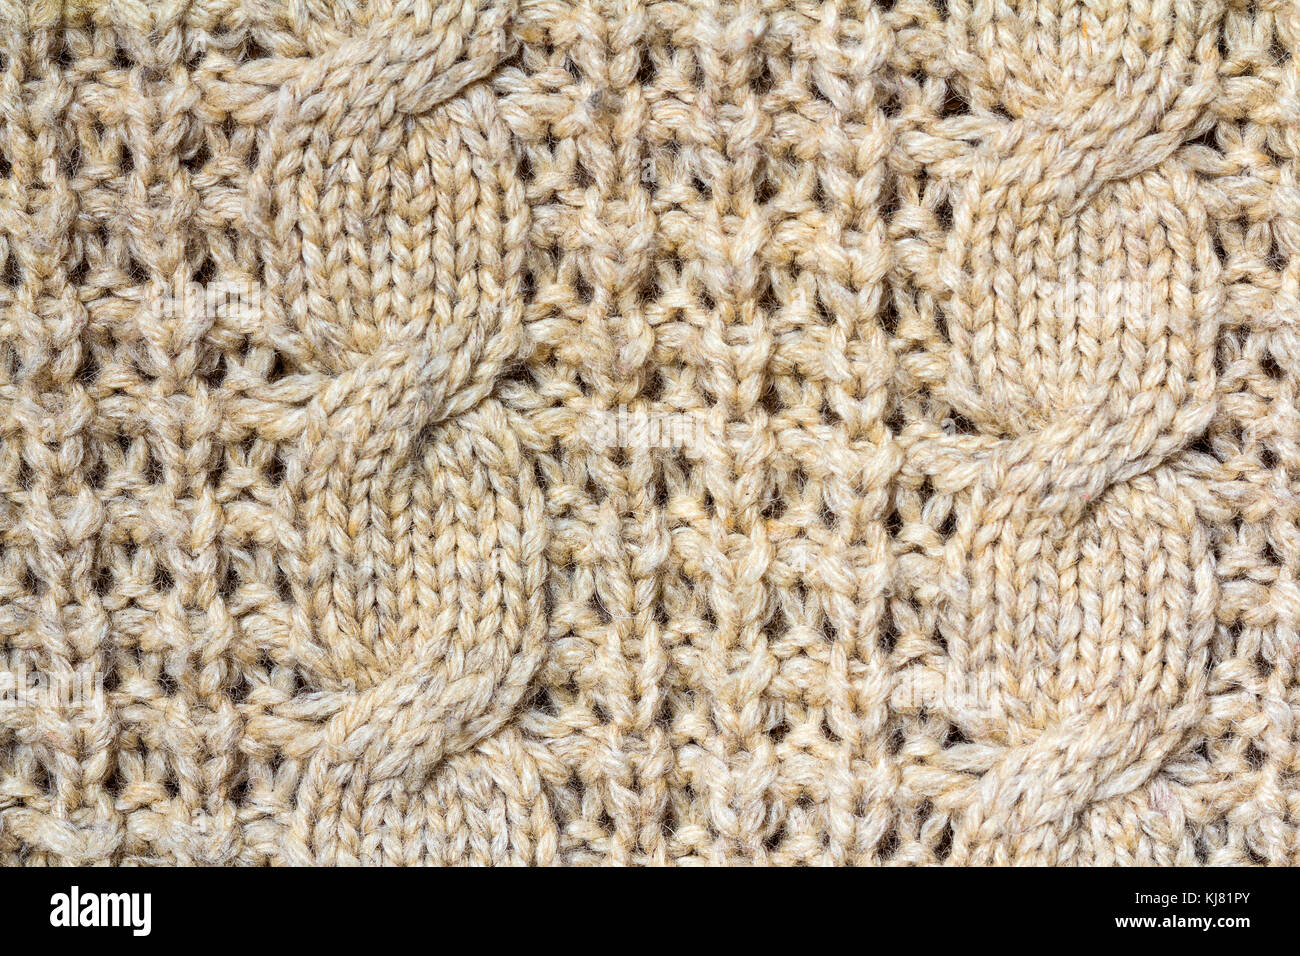 Old Knit Sweater Background Beige Imágenes De Stock & Old Knit ...